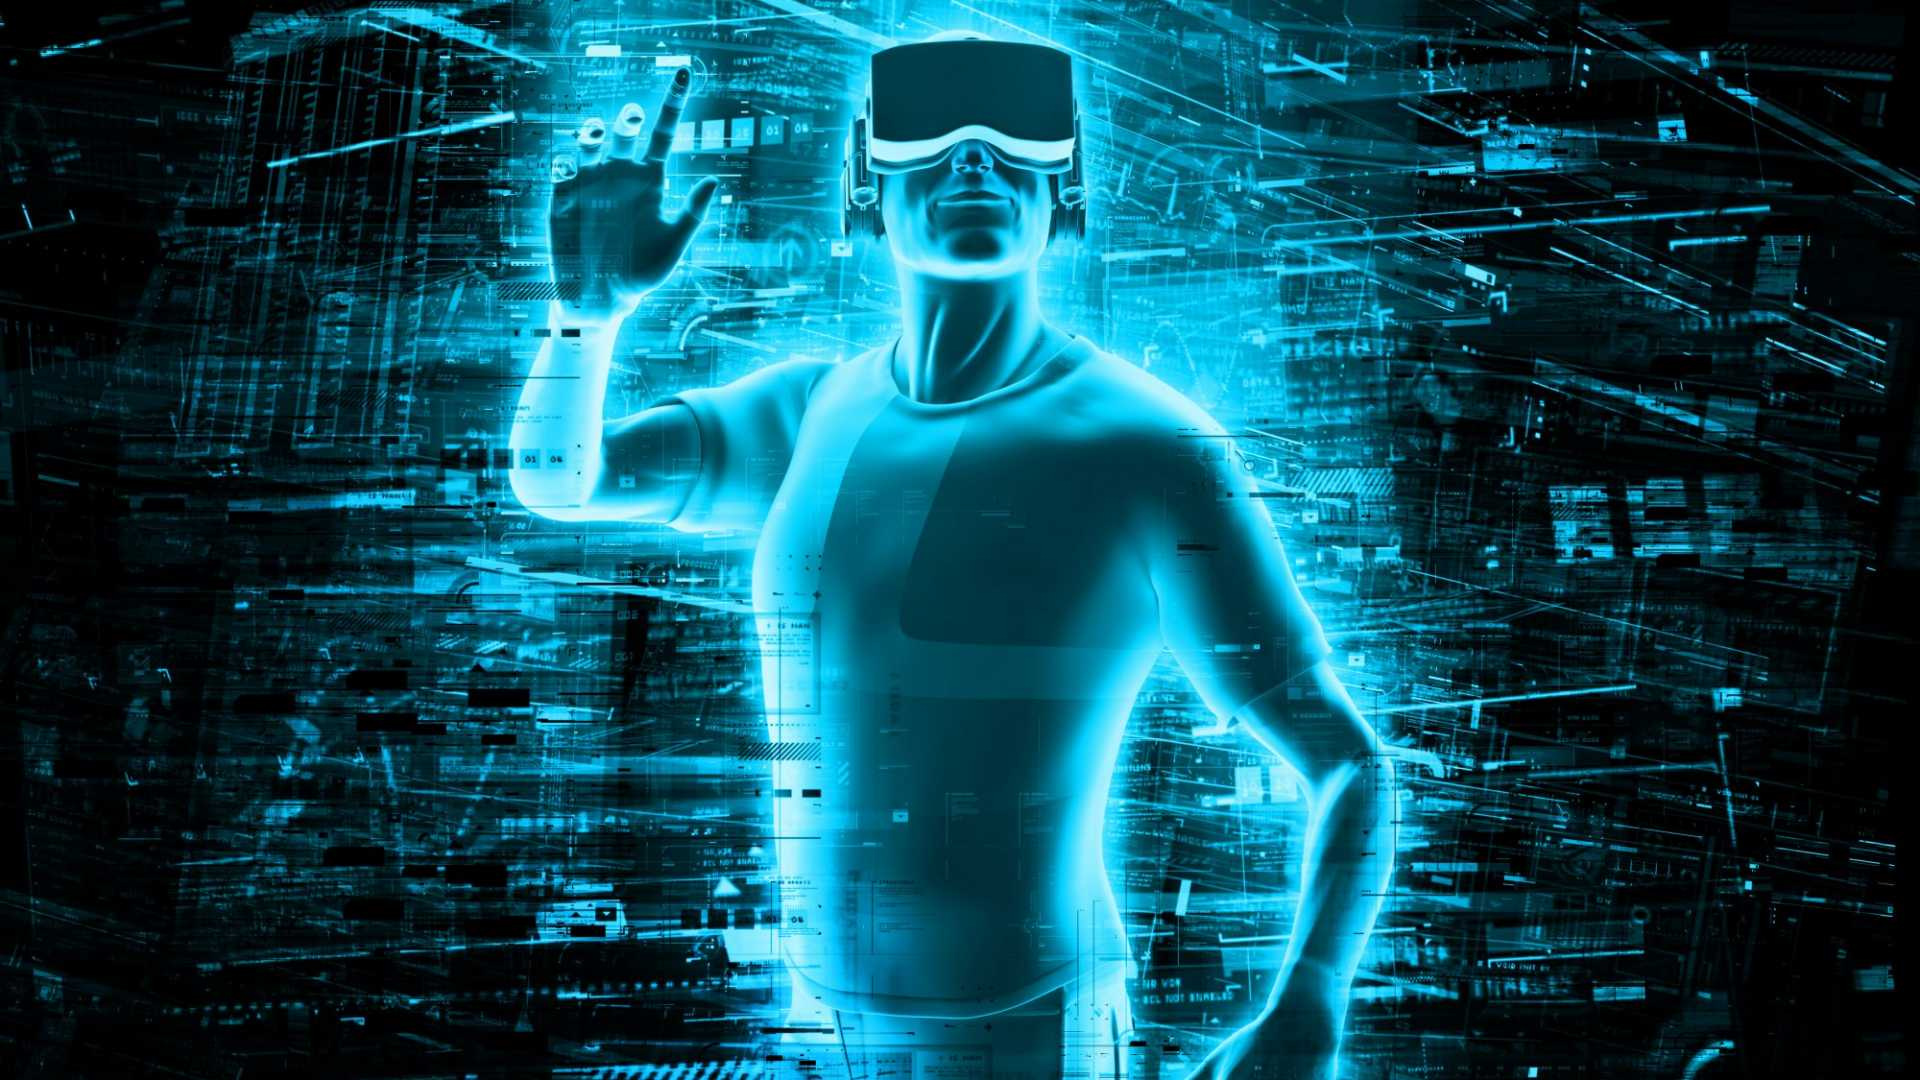 VR Is Evolving: How Startups Can Integrate it Into Their Marketing Mix